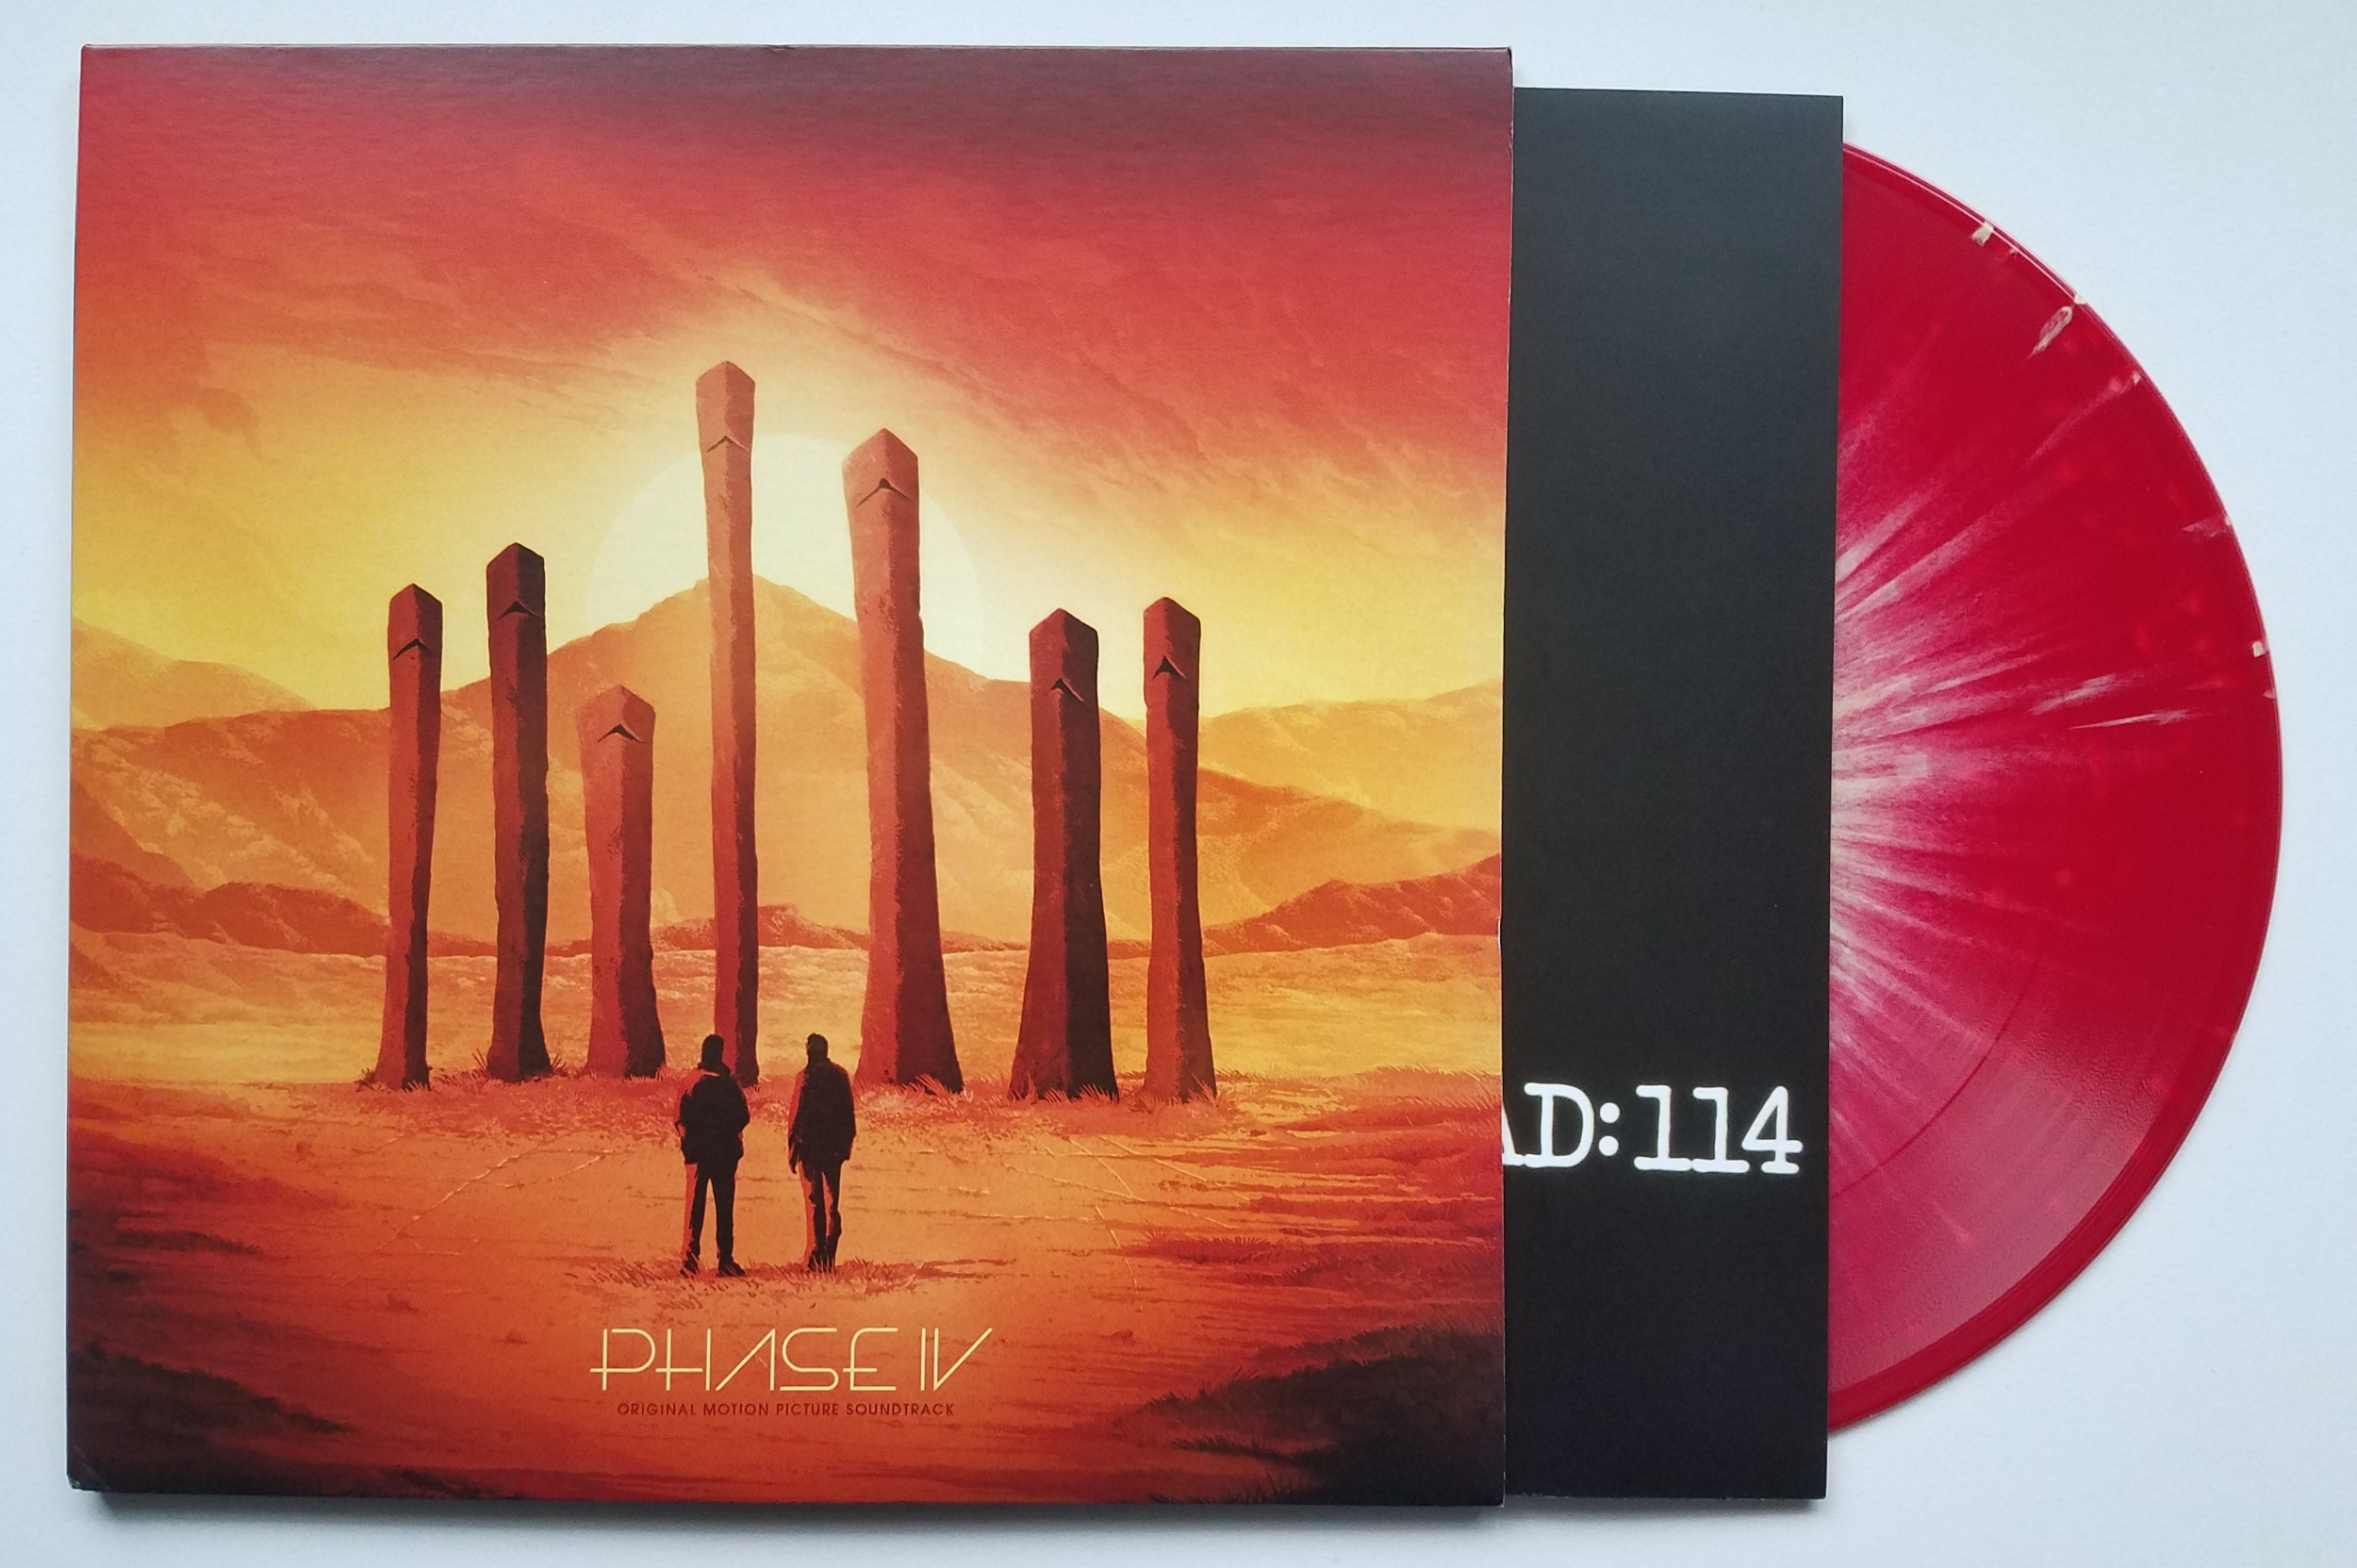 """Phase IV Original Soundtrack by Brian Gascoigne LP (""""Celestial Event"""" Red w/ Yellow Splatter - Subscriber Variant)"""